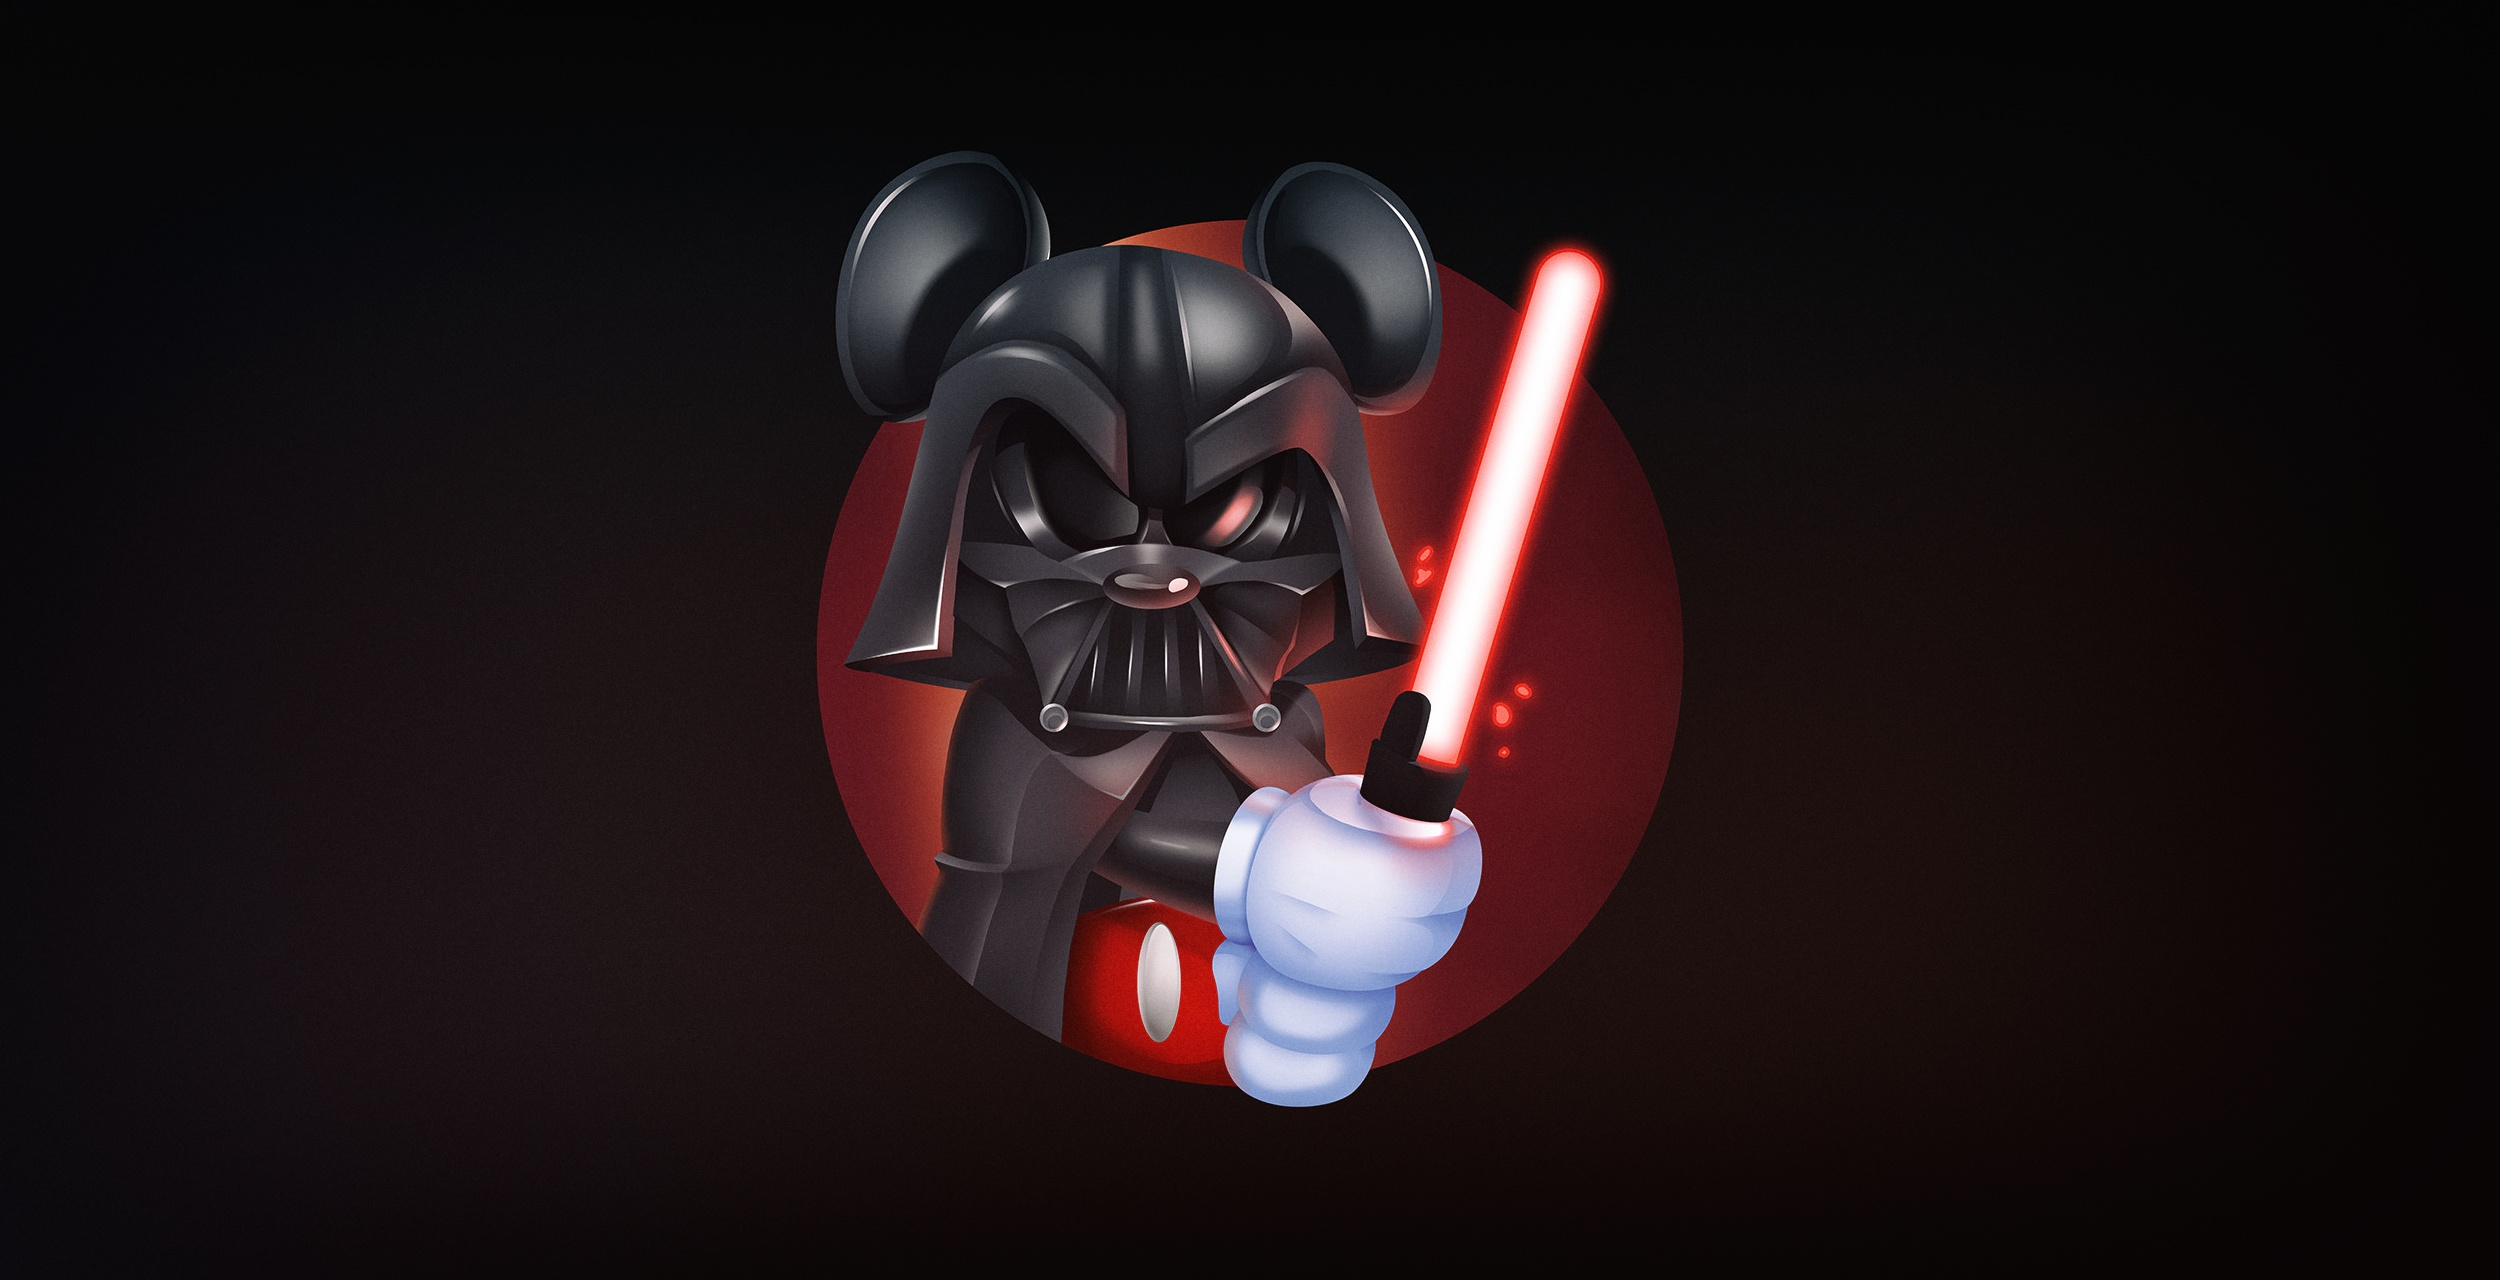 General 2500x1280 Mickey Mouse Darth Vader Star Wars Star Wars Villains simple background mouse ears lightsaber Sith